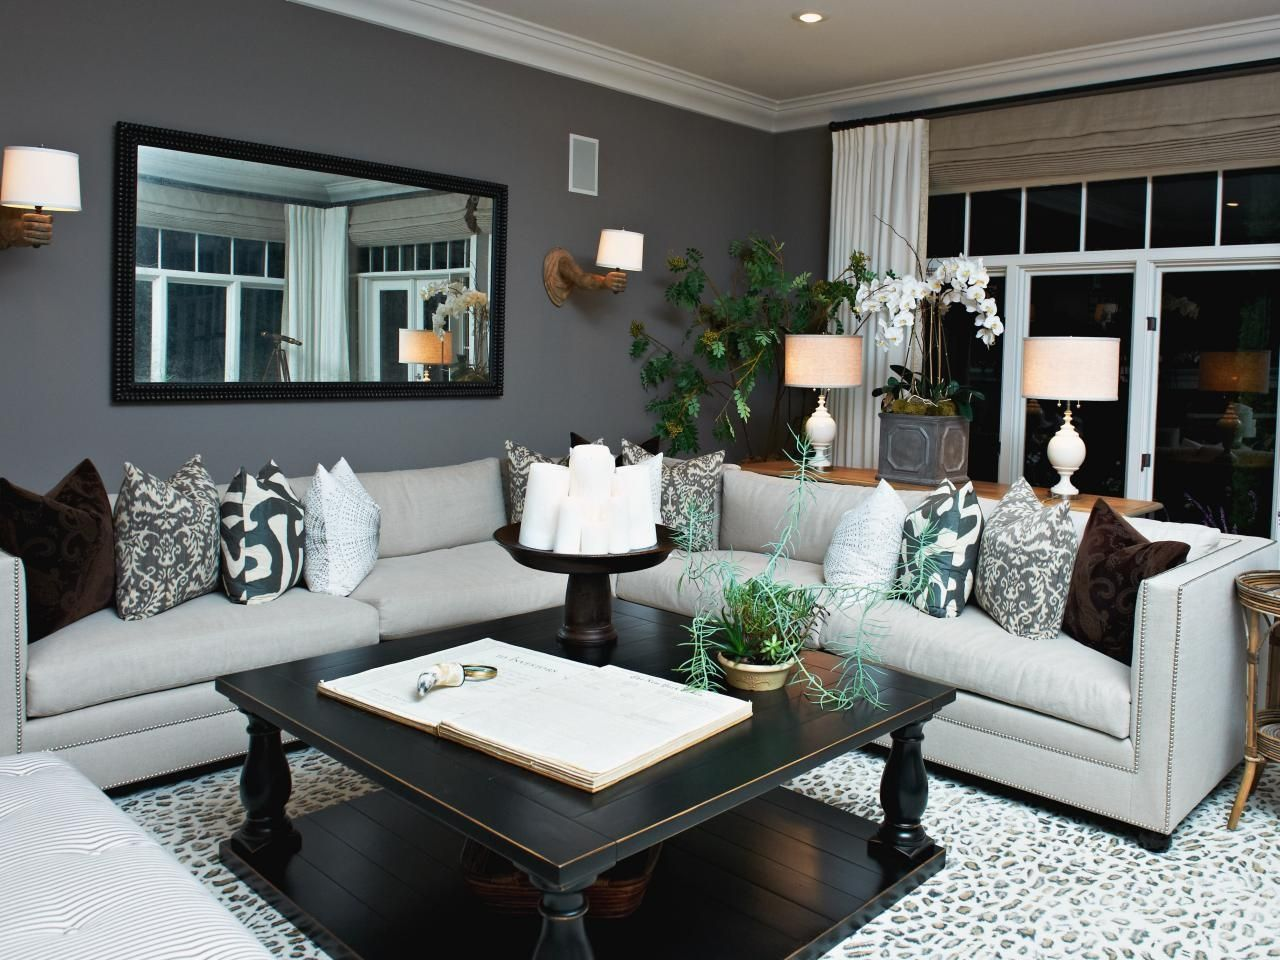 gray living room with bold accents hgtv pertaining to gray living rooms renovation gray living room with bold accents hgtv pertaining to gray living rooms 10 Cozy Living